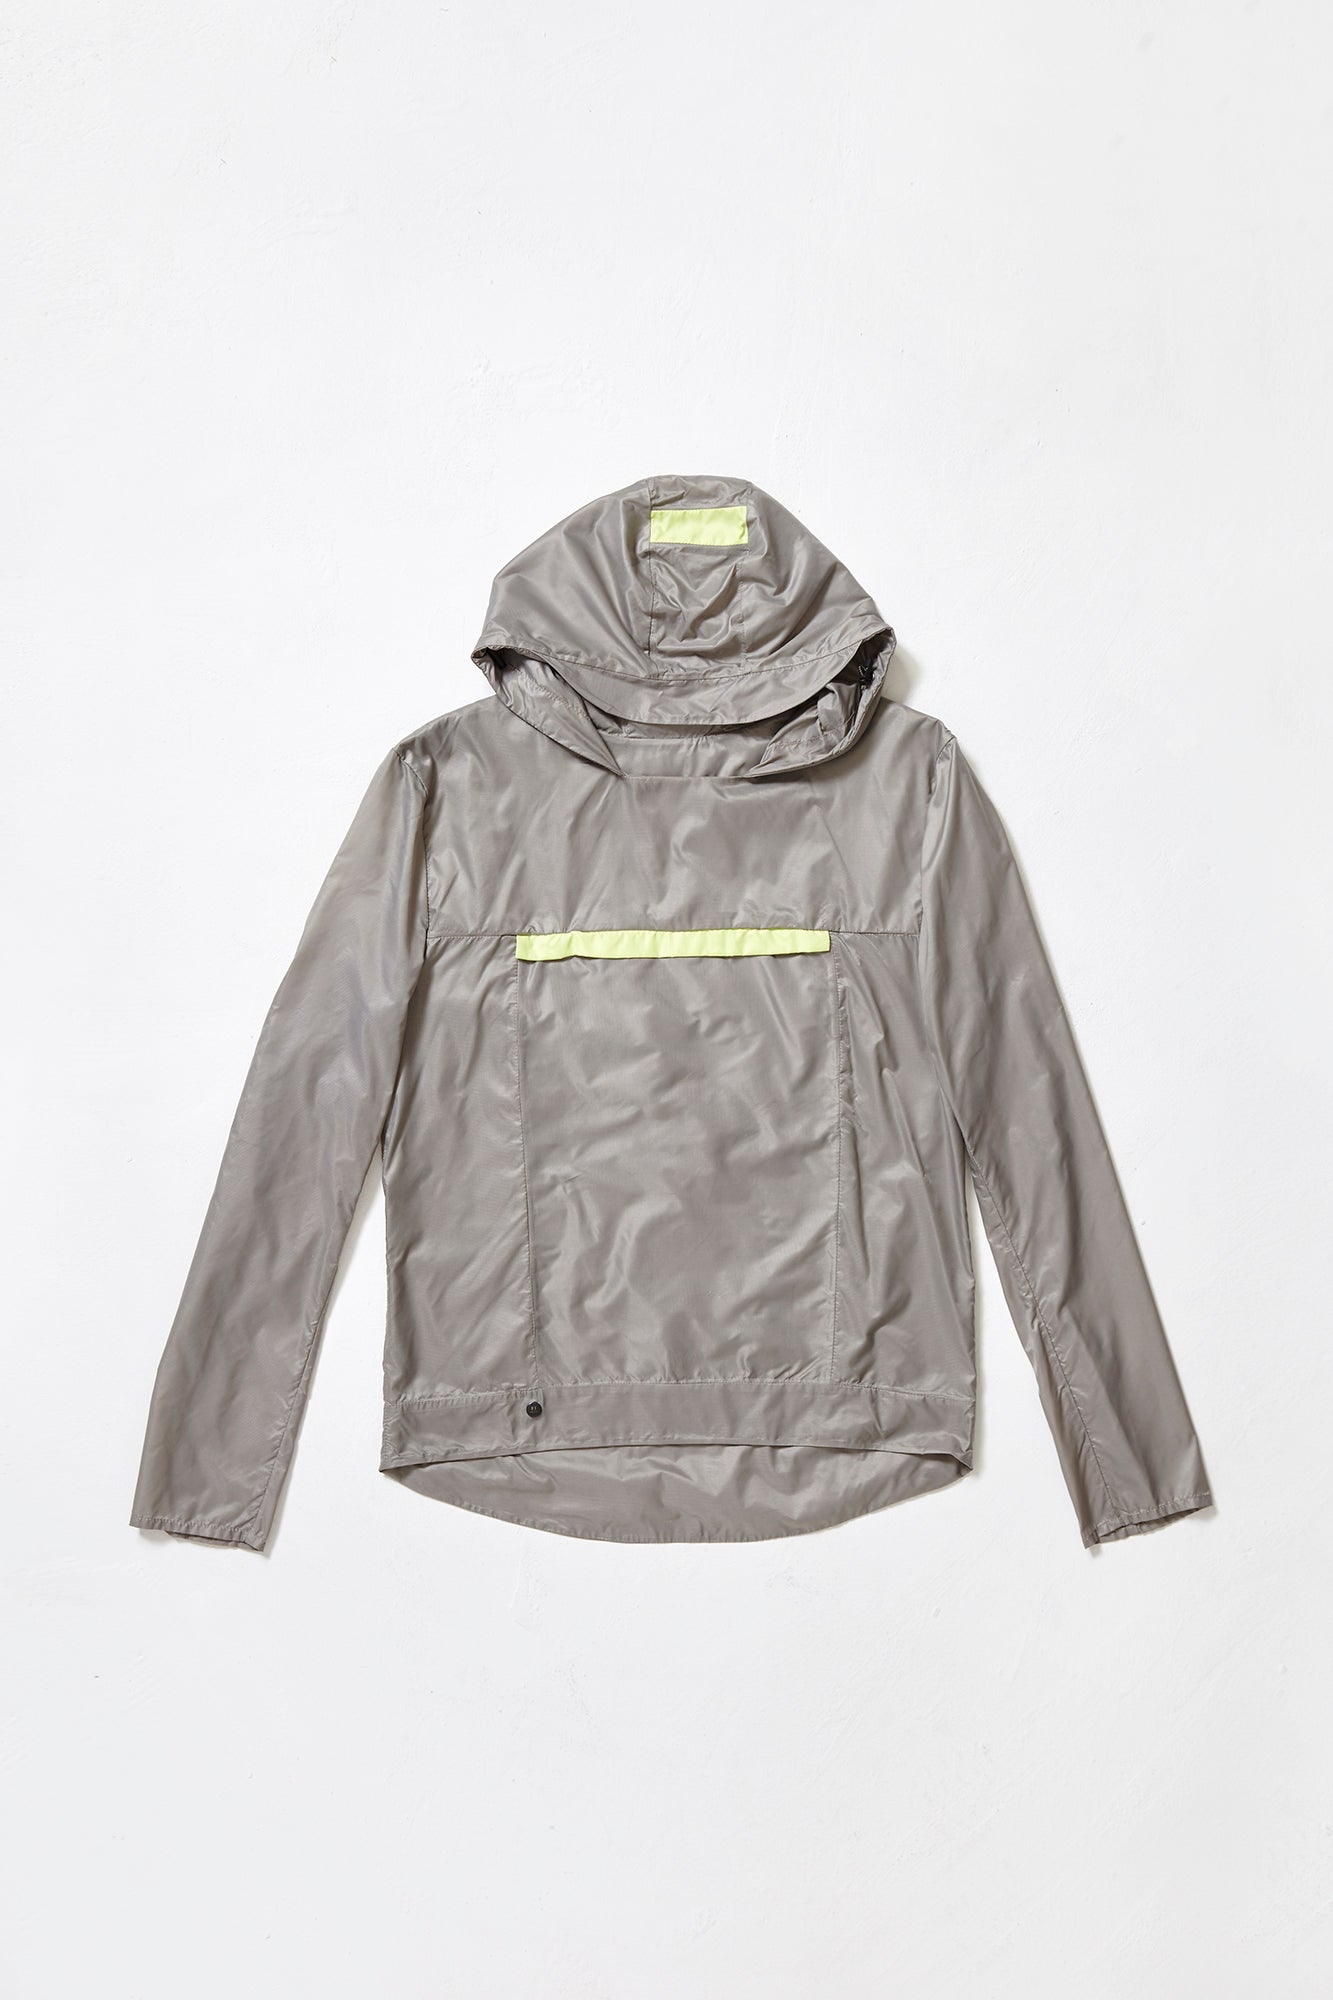 POUCH POCKET JACKET - grey raincoat for men